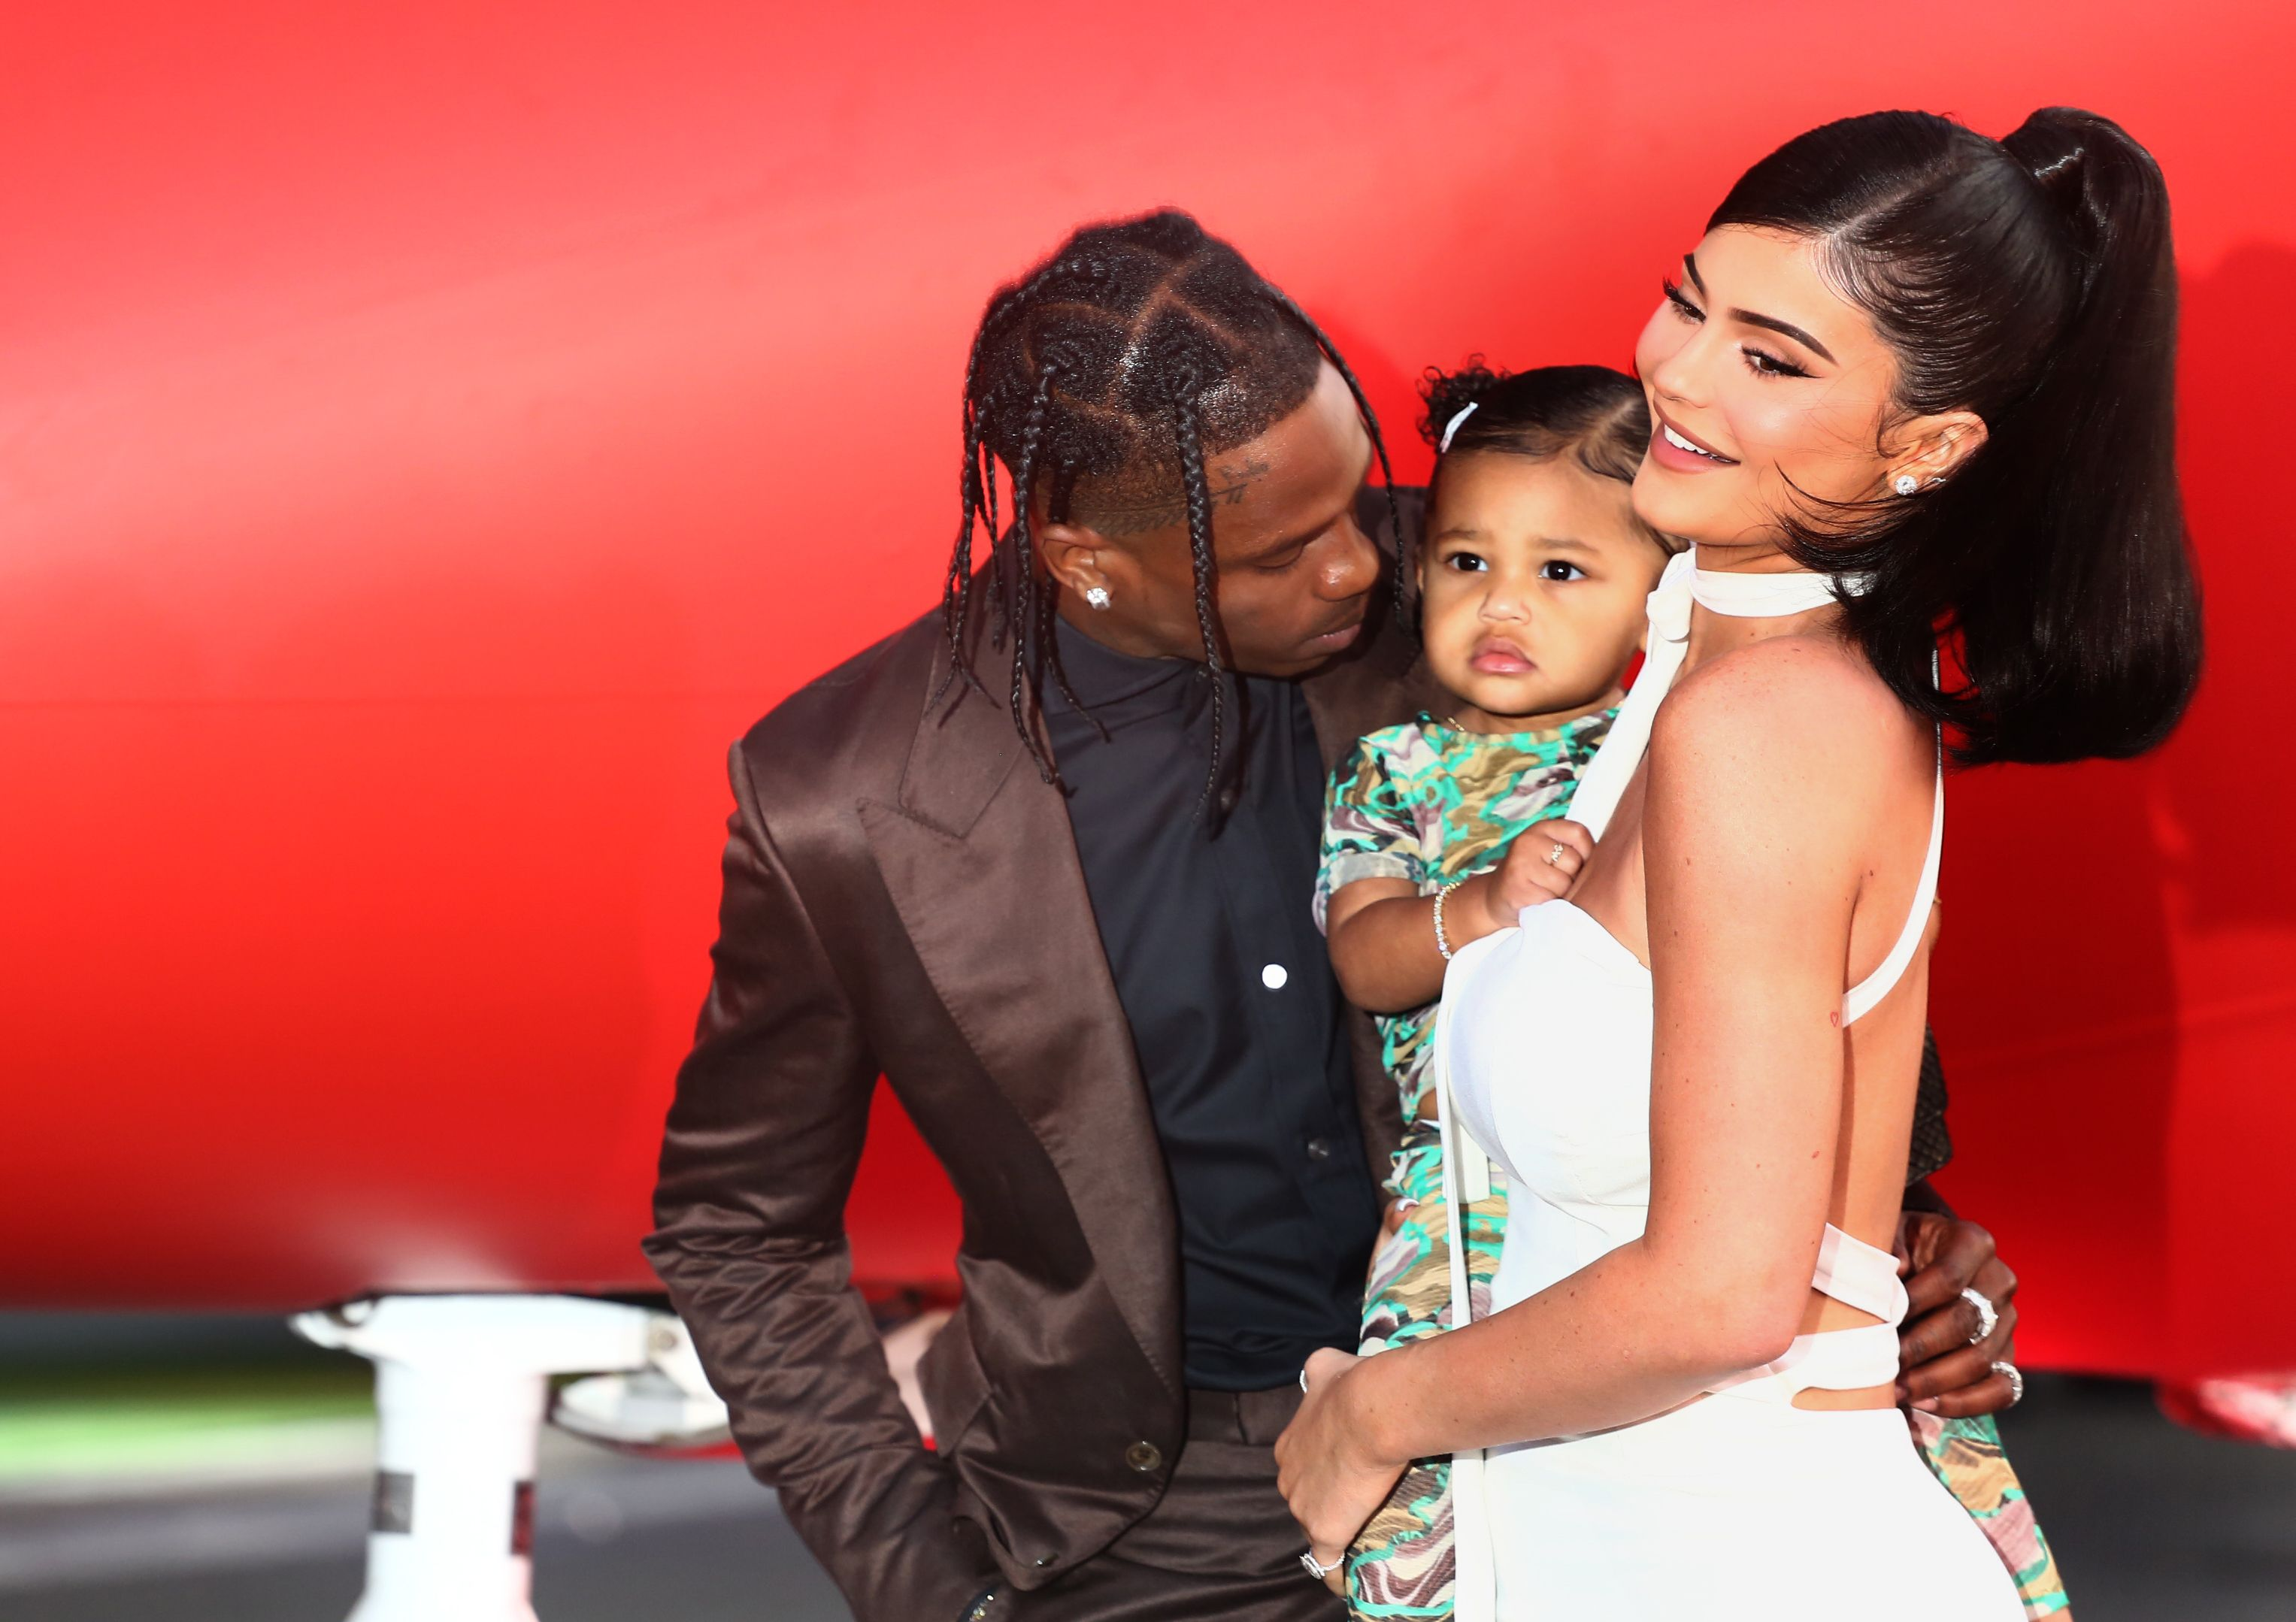 Kylie Jenner, Travis Scott, and their daughter Stormi